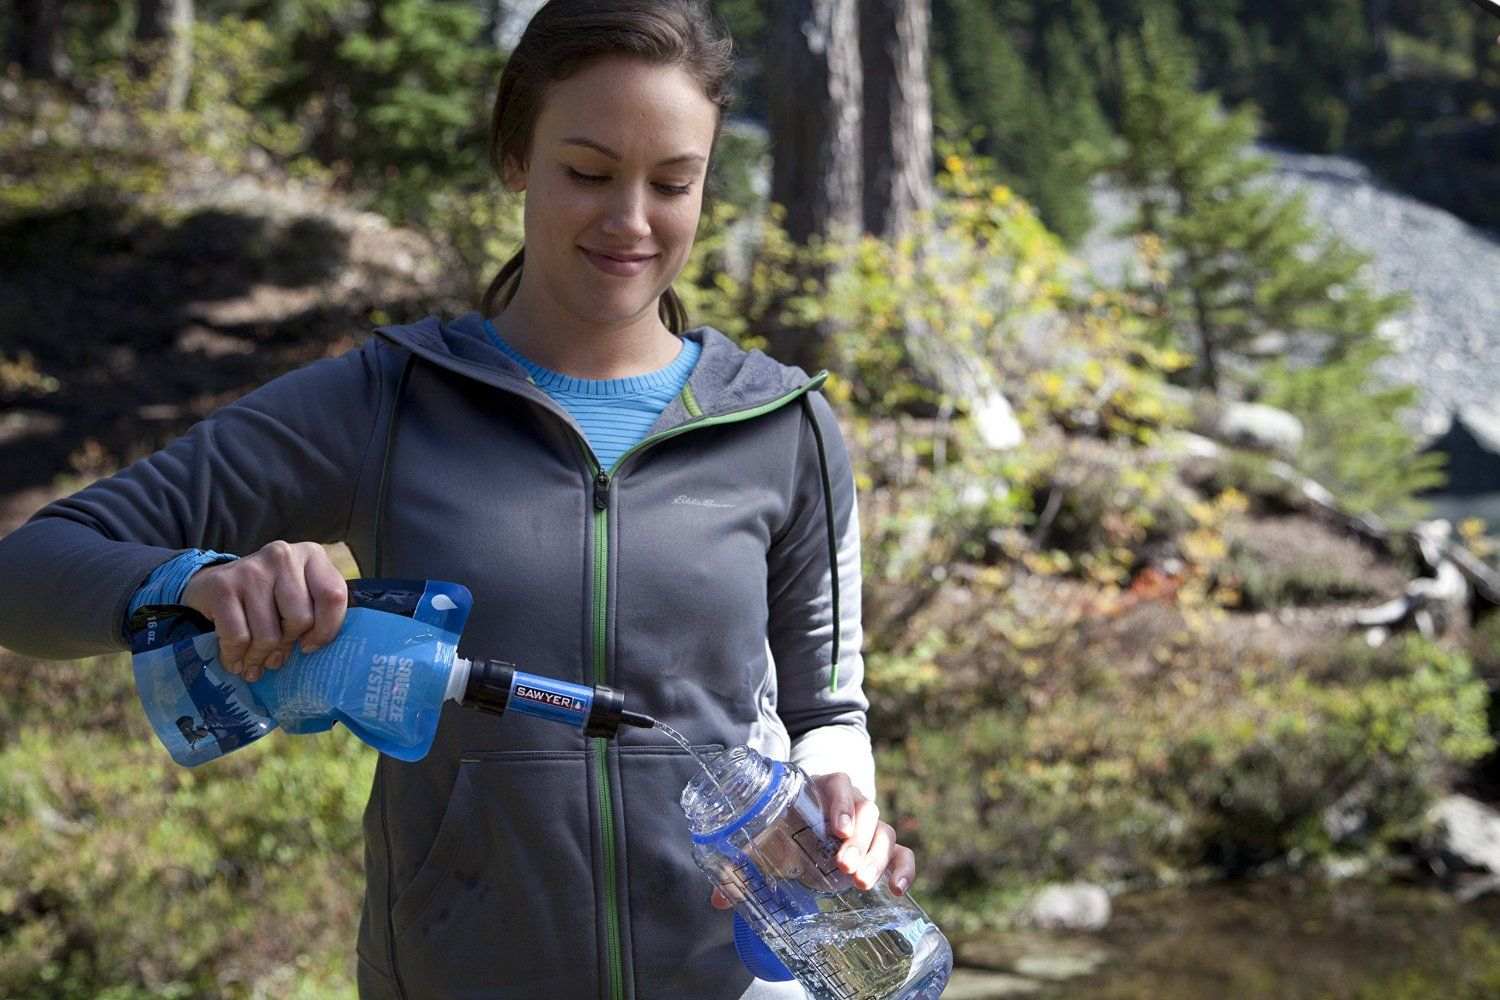 The Sawyer Mini Water Filtration System is our favorite